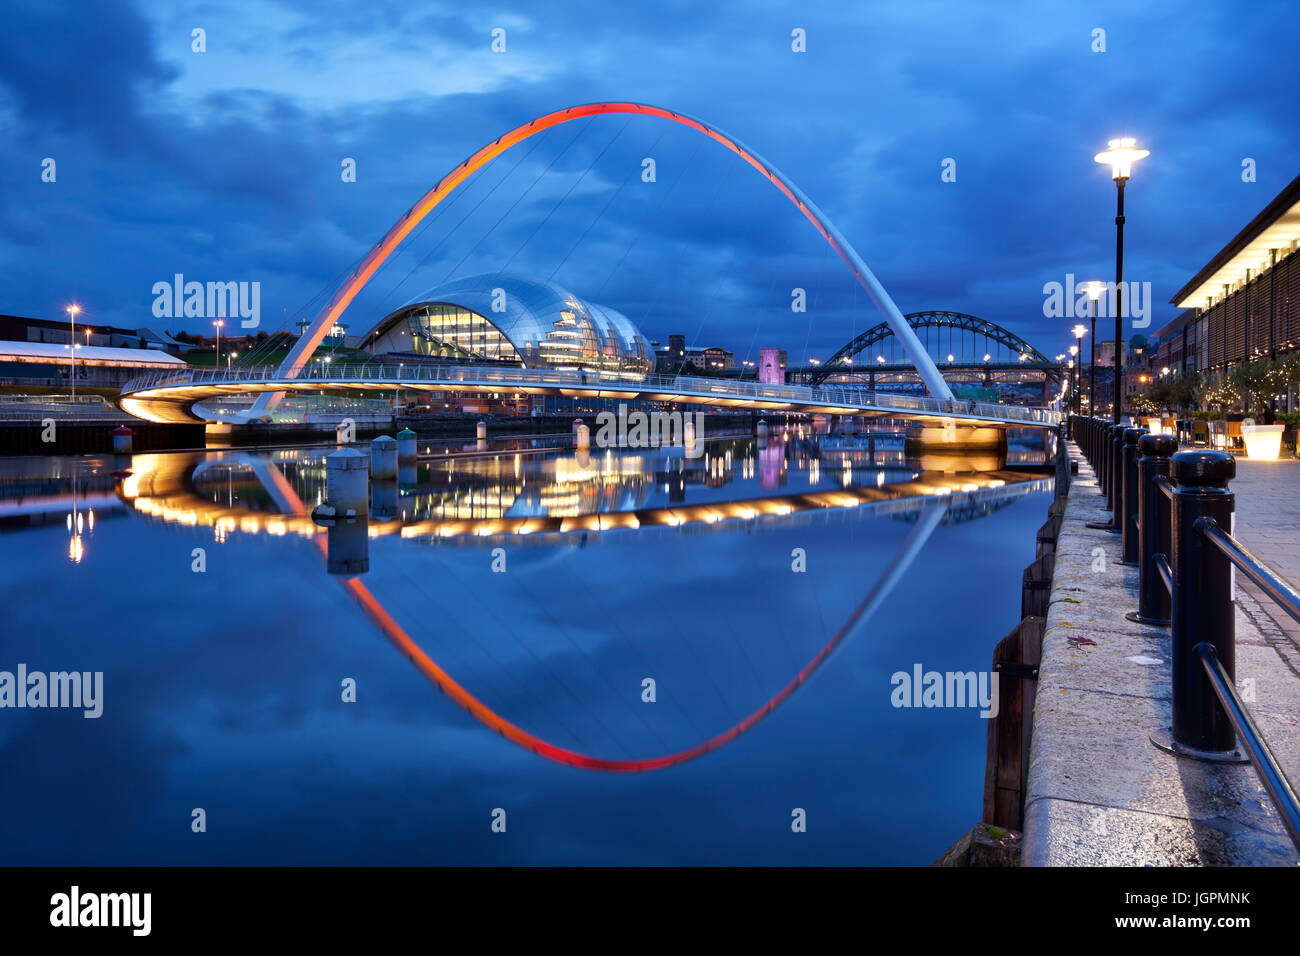 The Gateshead Millennium Bridge over the river Tyne in Newcastle upon Tyne, England. Stock Photo